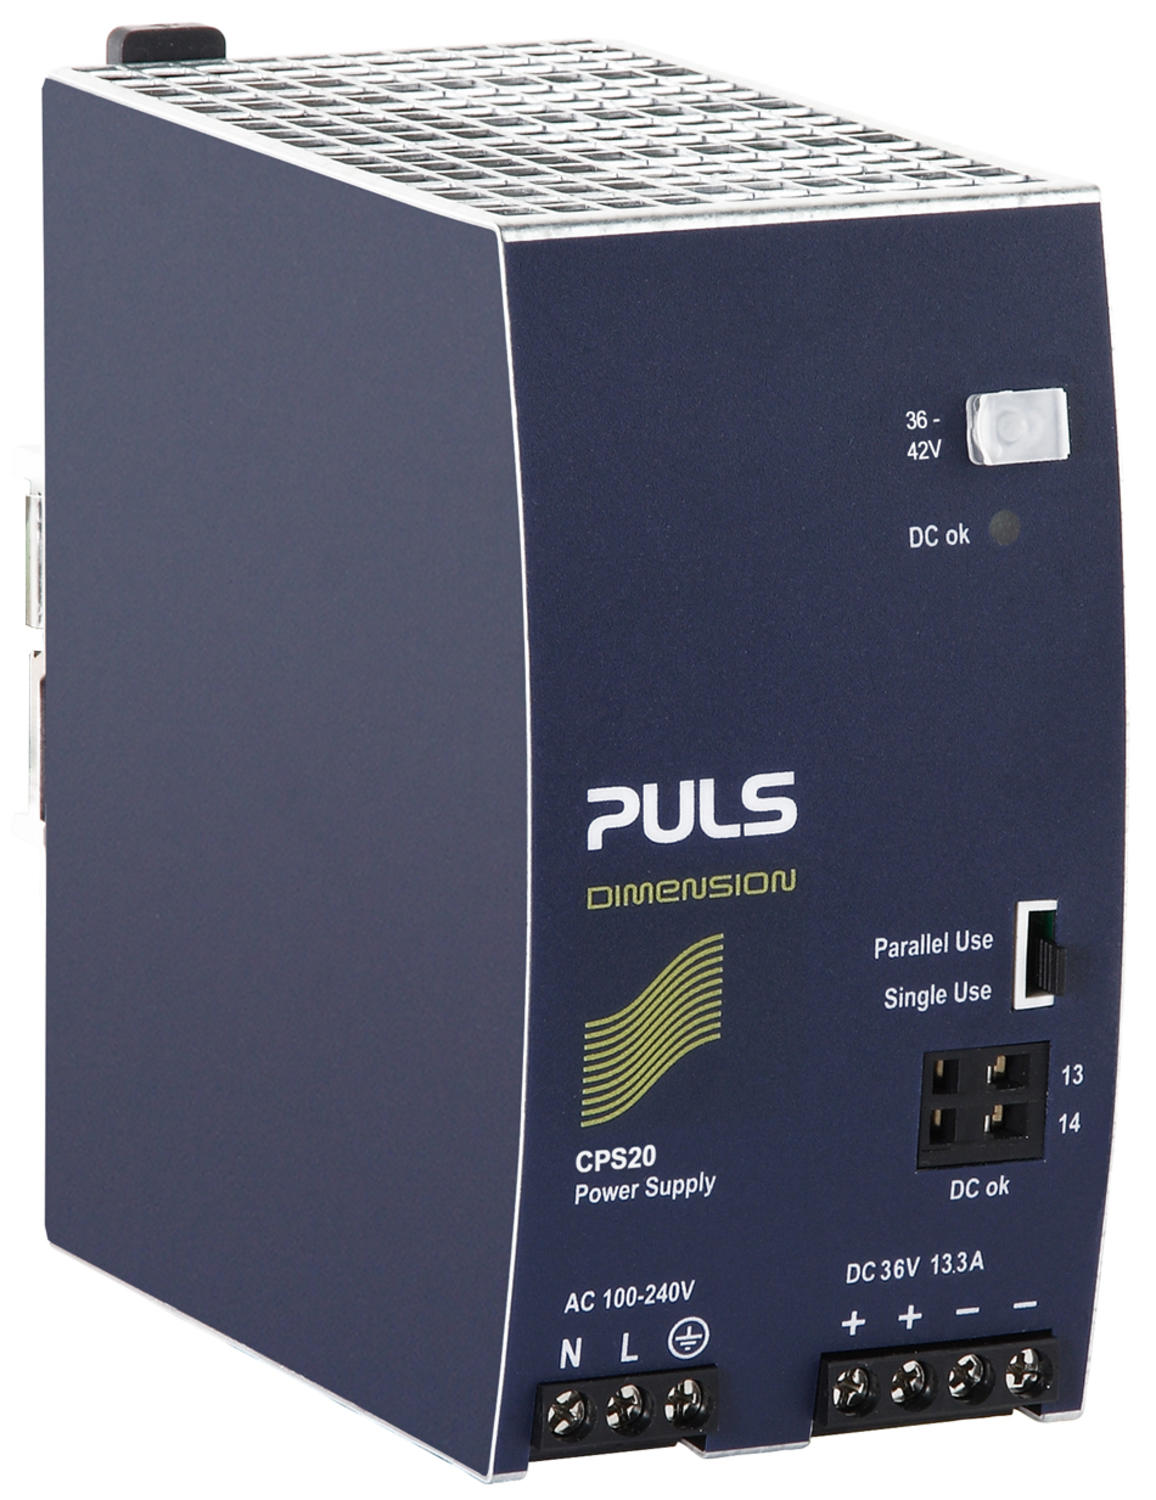 Power supply 1-phase, 36 V dc Dimension C Series